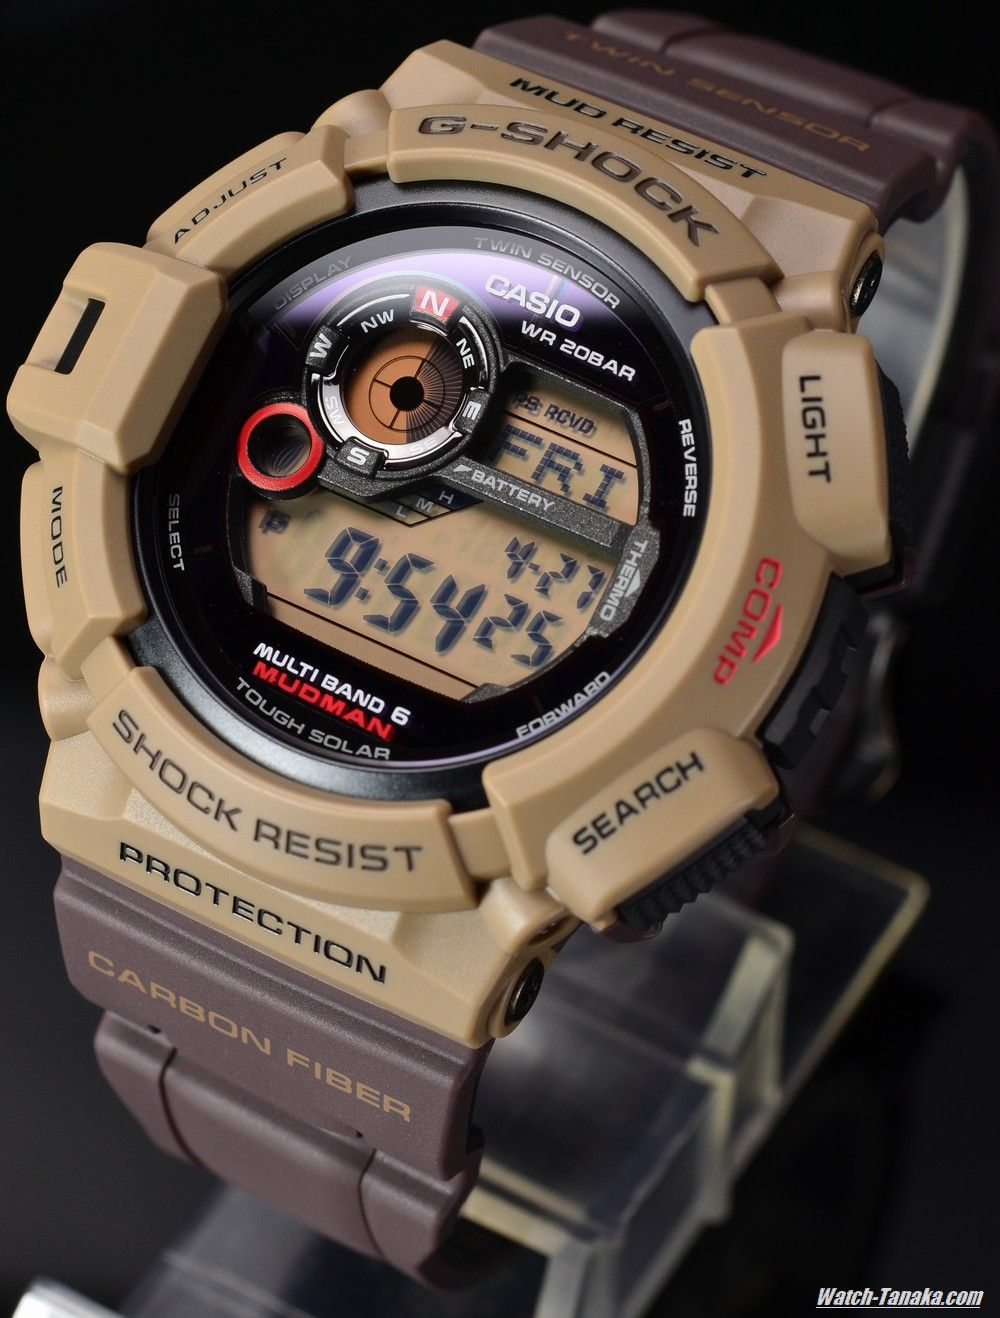 G Shock Men In Military Colors Mudman Gw 9300er 5jf Watches Casio Gshock Original Gd 100ms 3er Limited Colorway